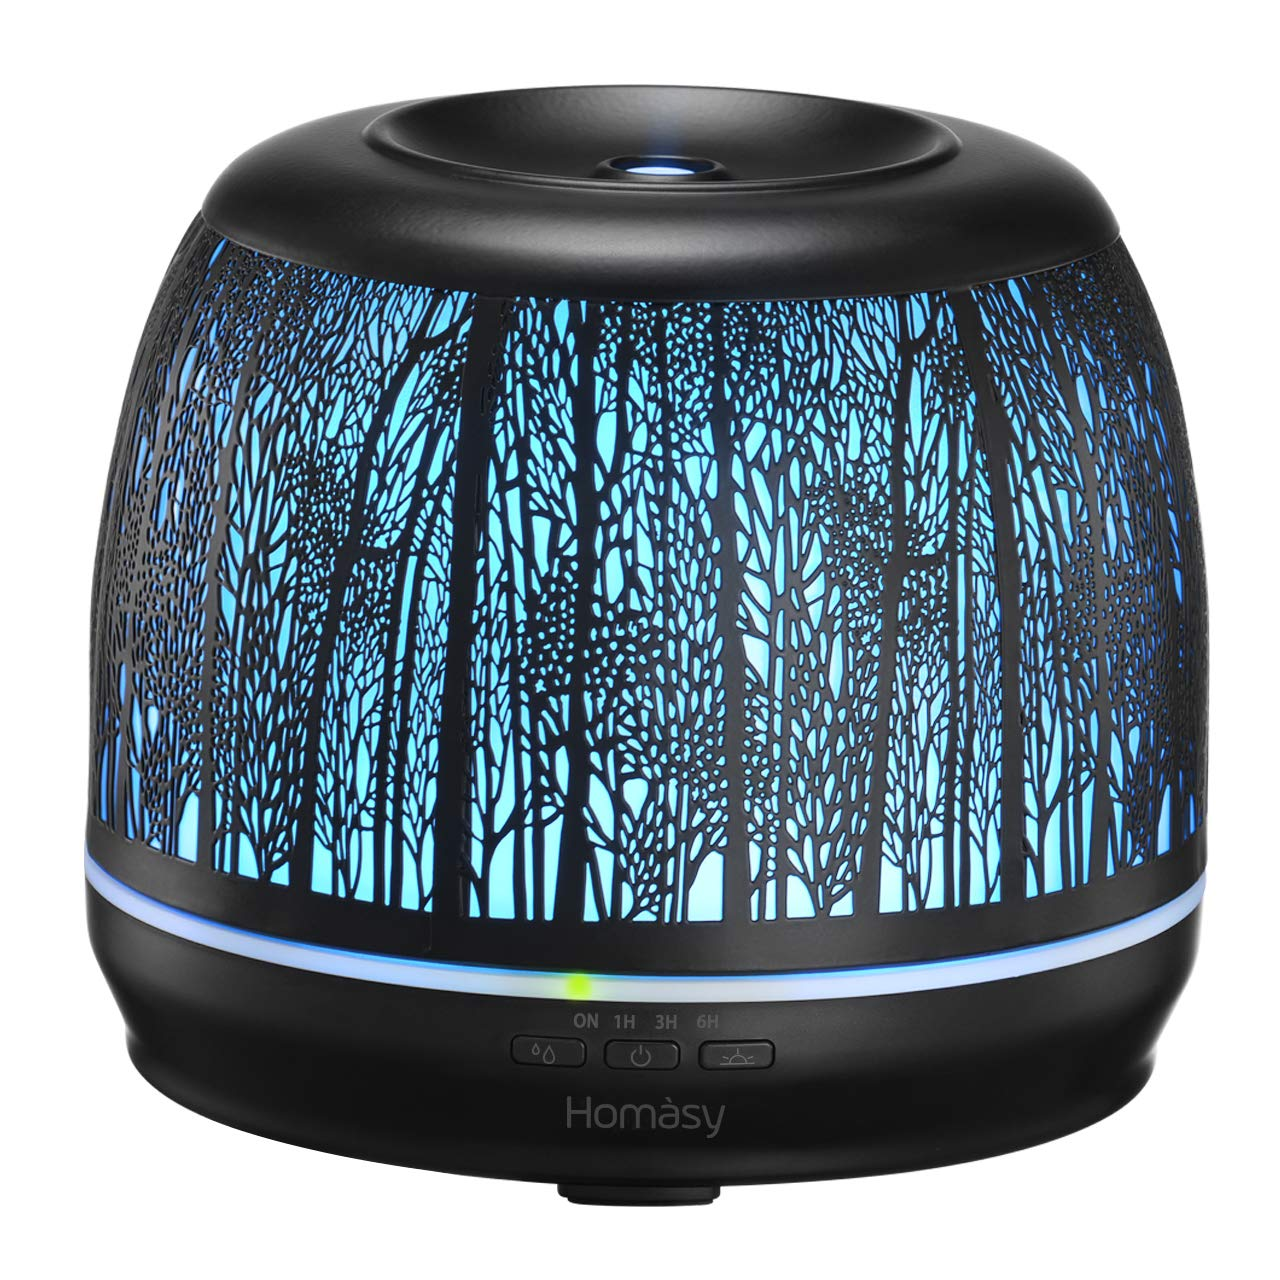 Best Oil Diffuser brands for your home or office to provide healing, healthy benefits of therapeutic, pure oils.